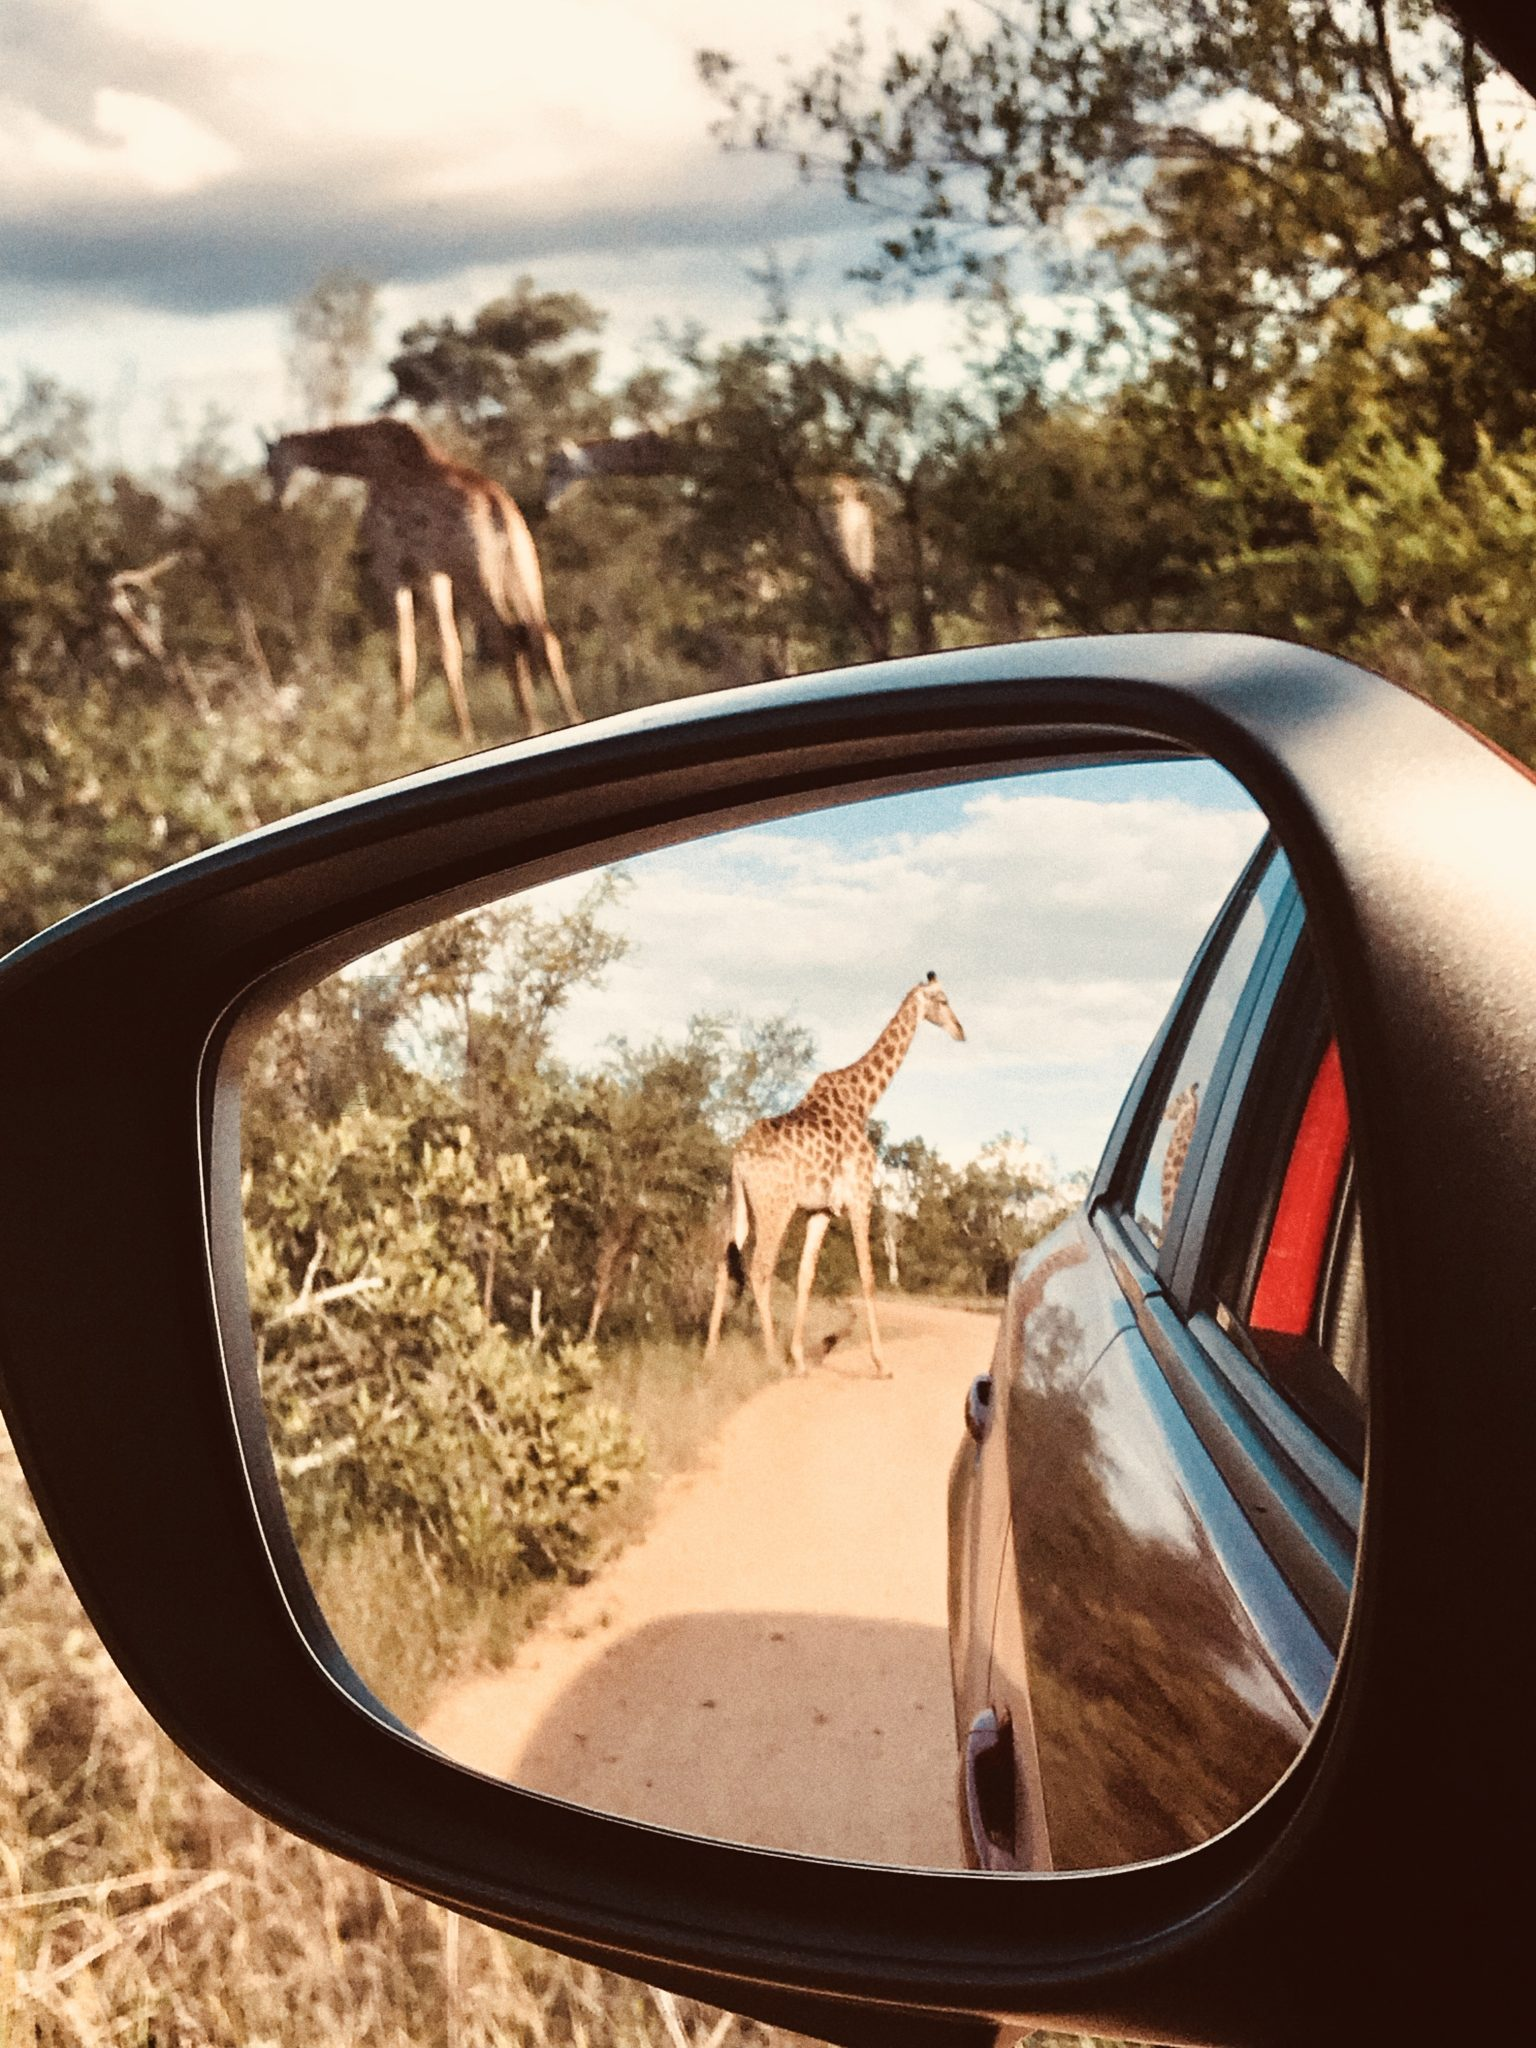 A first Timers Guide to The Kruger